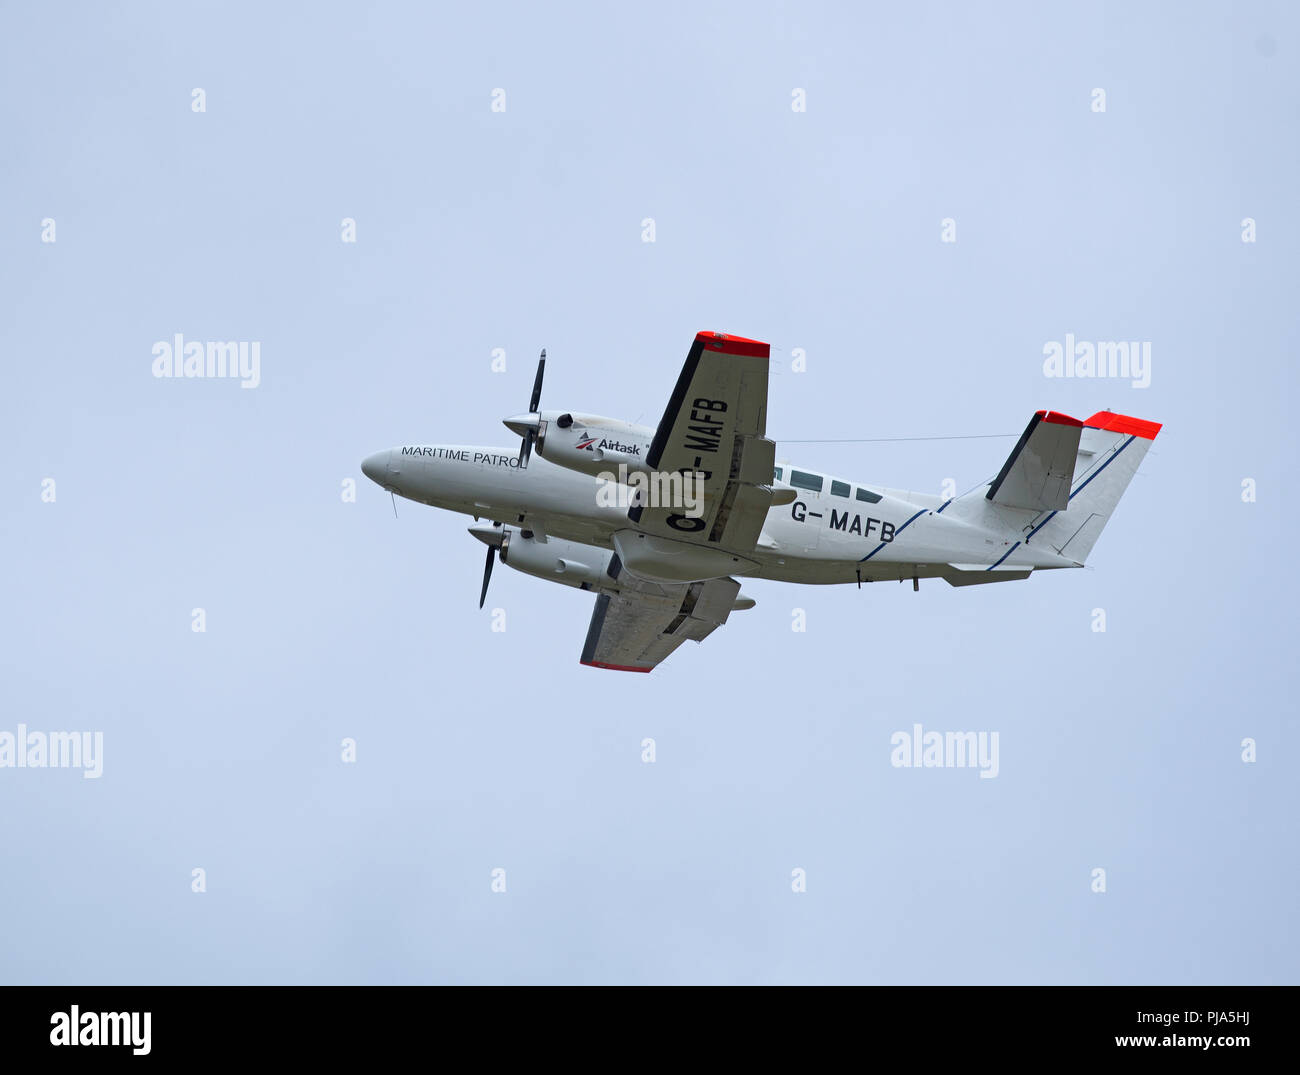 A marine & Fisheries Board twin engined aircraft leaving Inverness for a surveillance flight round the Orkney Isles to protect rising interests. Stock Photo